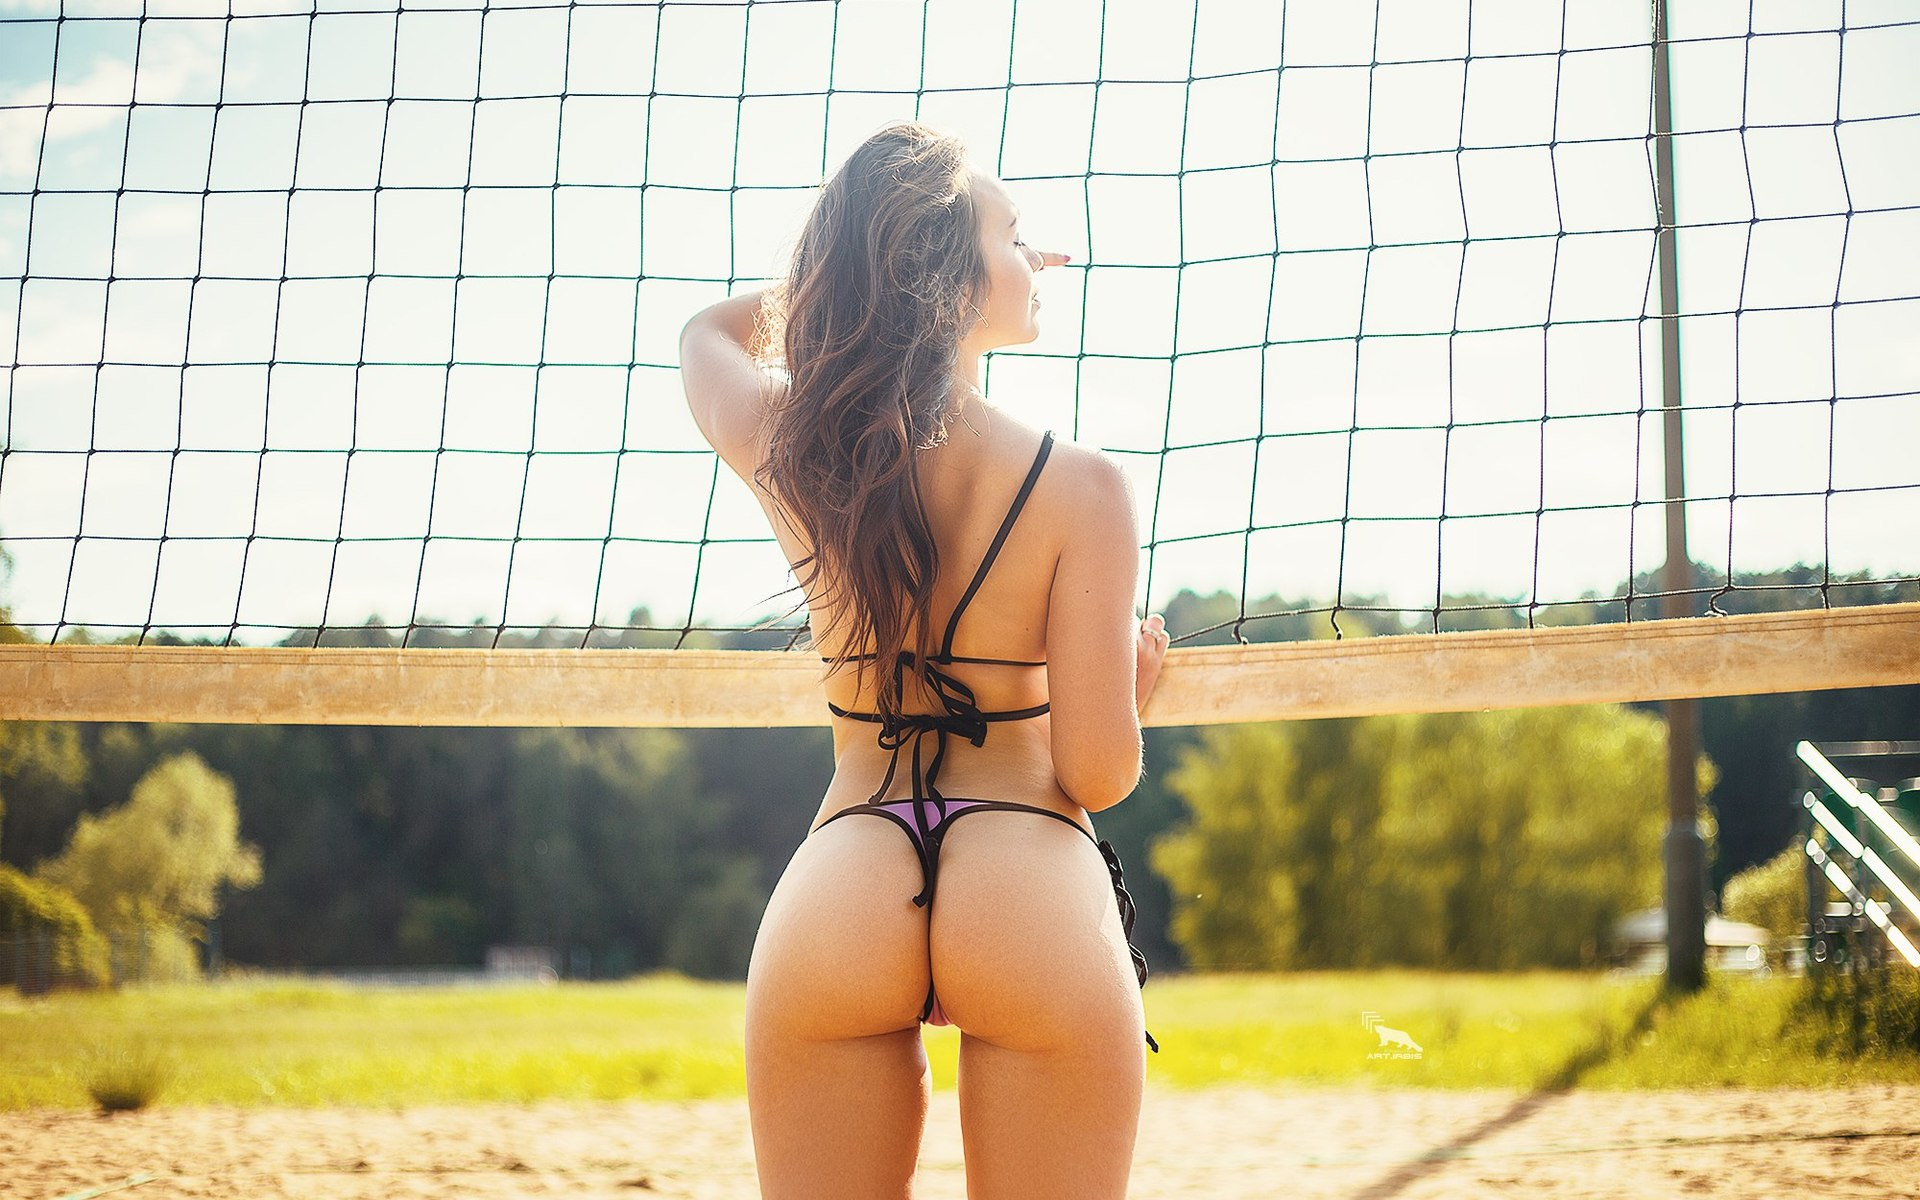 women-brunette-purple-bikini-beach-volleyball-sand-ass-